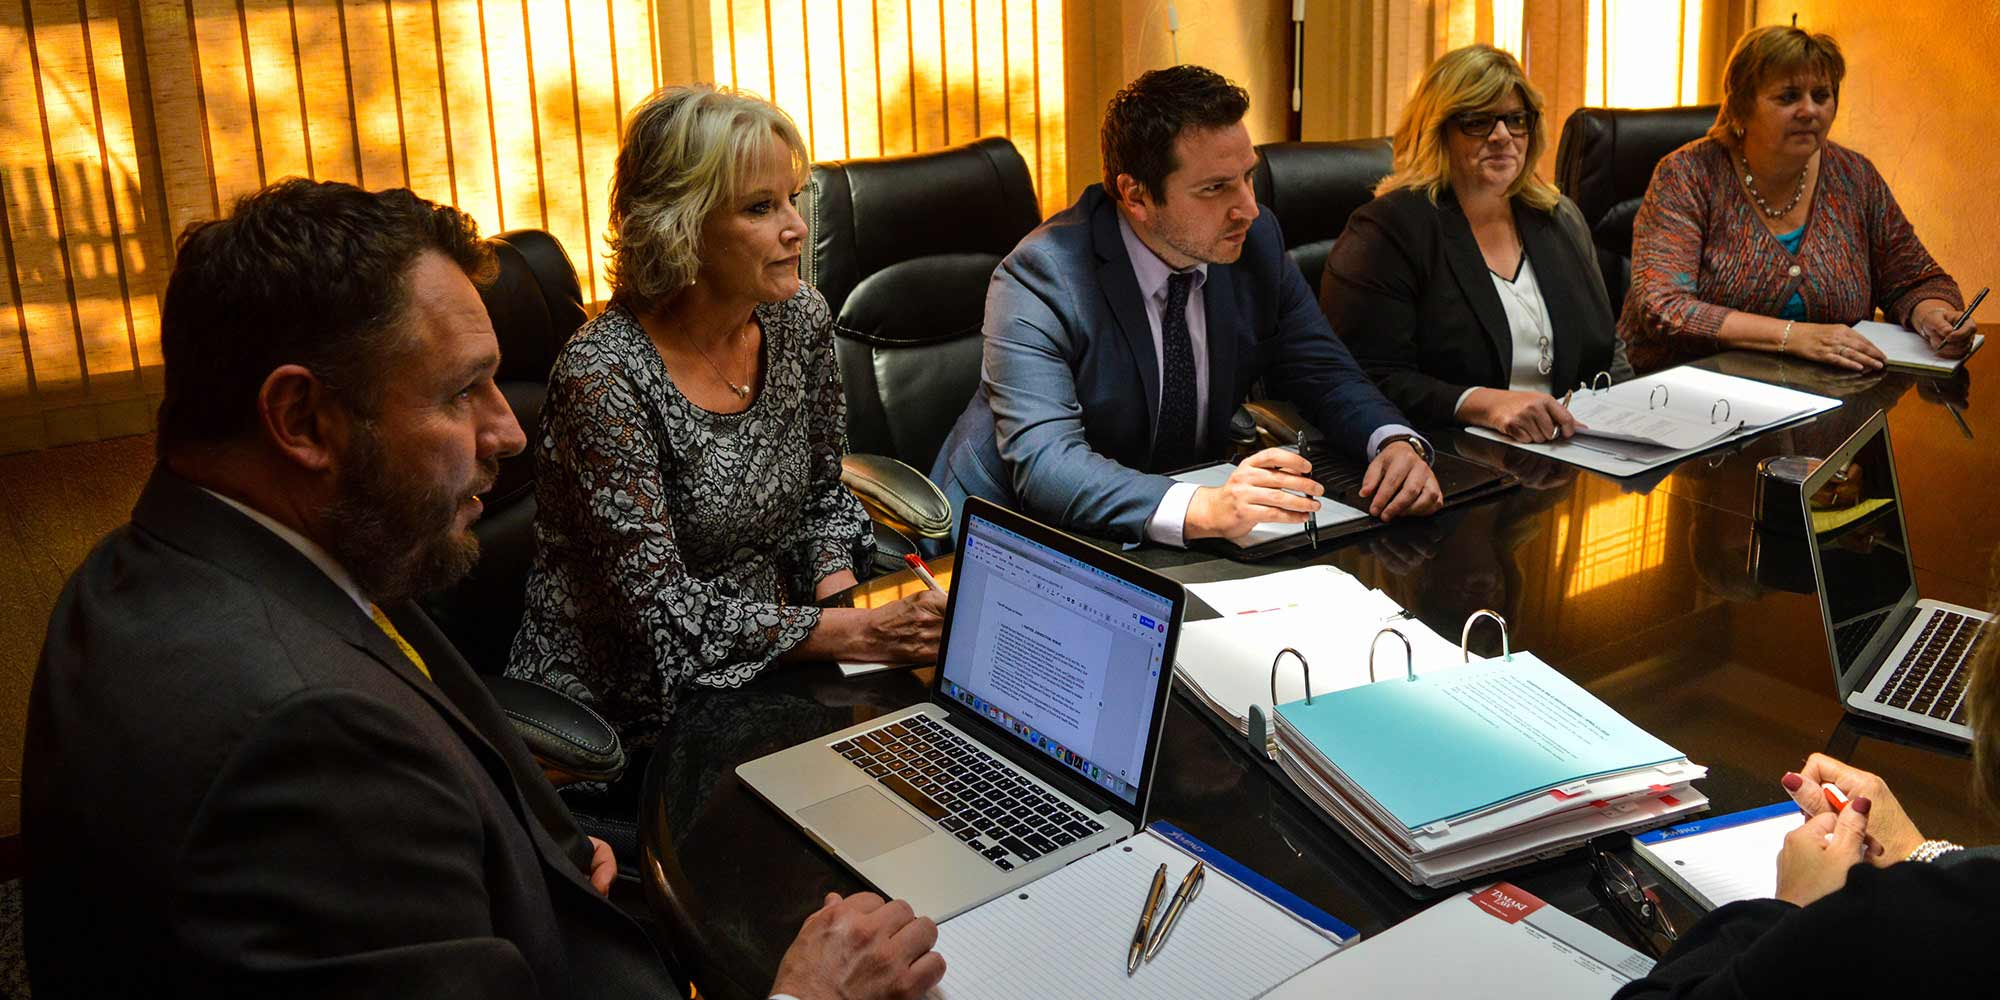 Tamaki legal team working together at a conference table